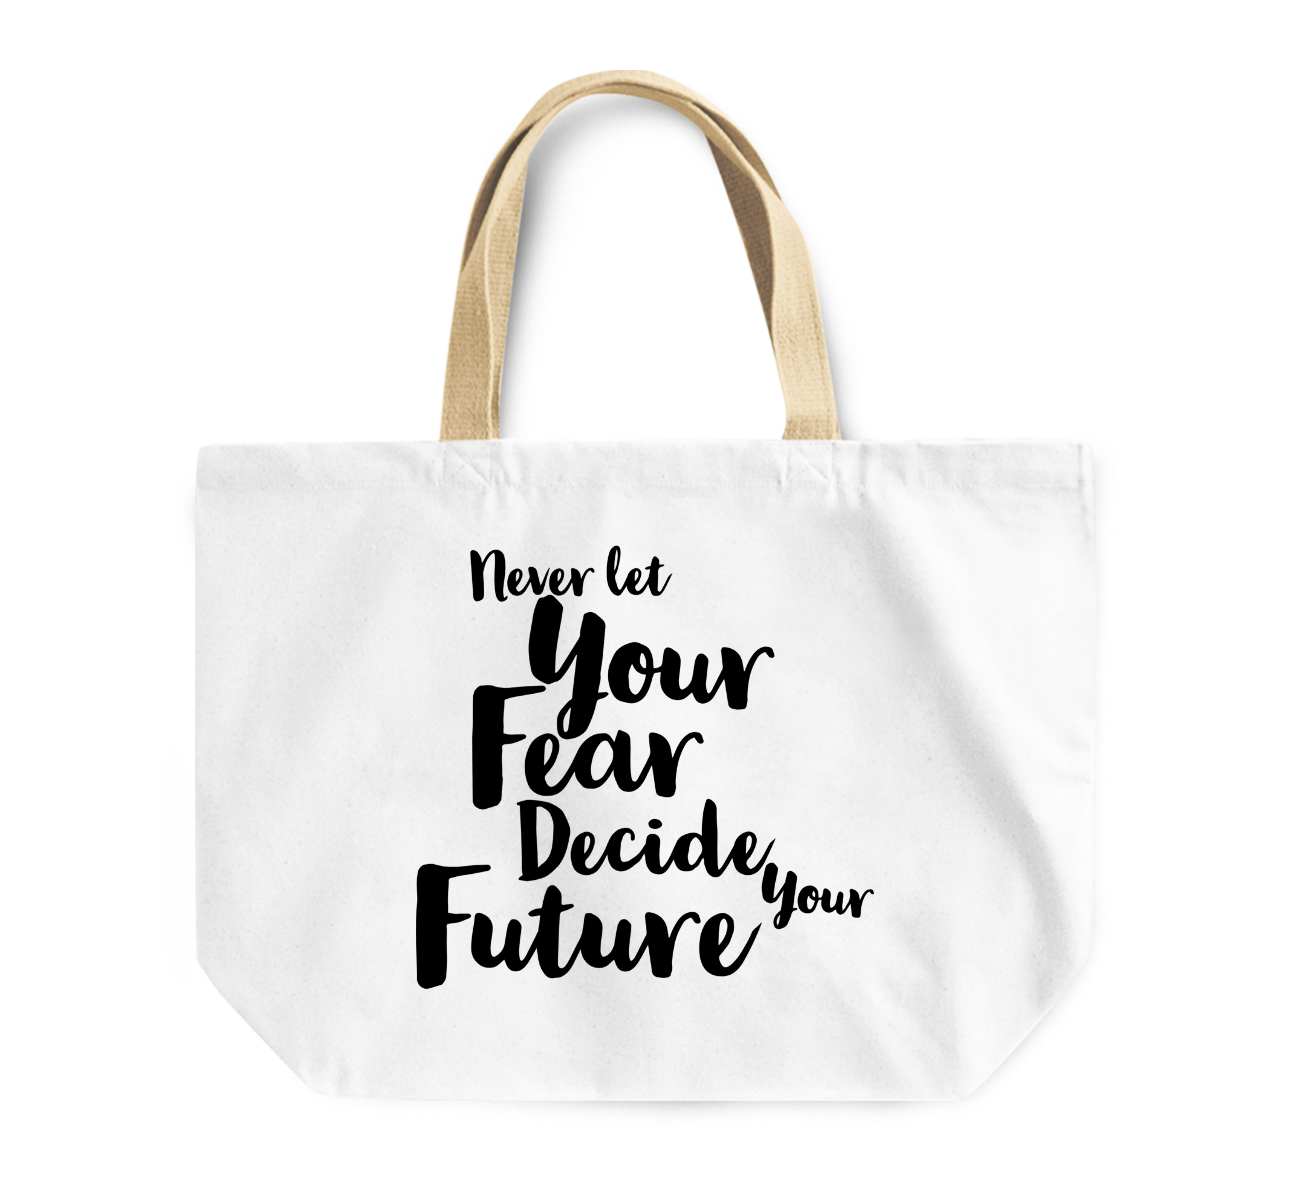 Tote Bag Never Let Your Fear Deciede Your Future Quote Reusable Shopping Bag Inspiration By Loud Universe